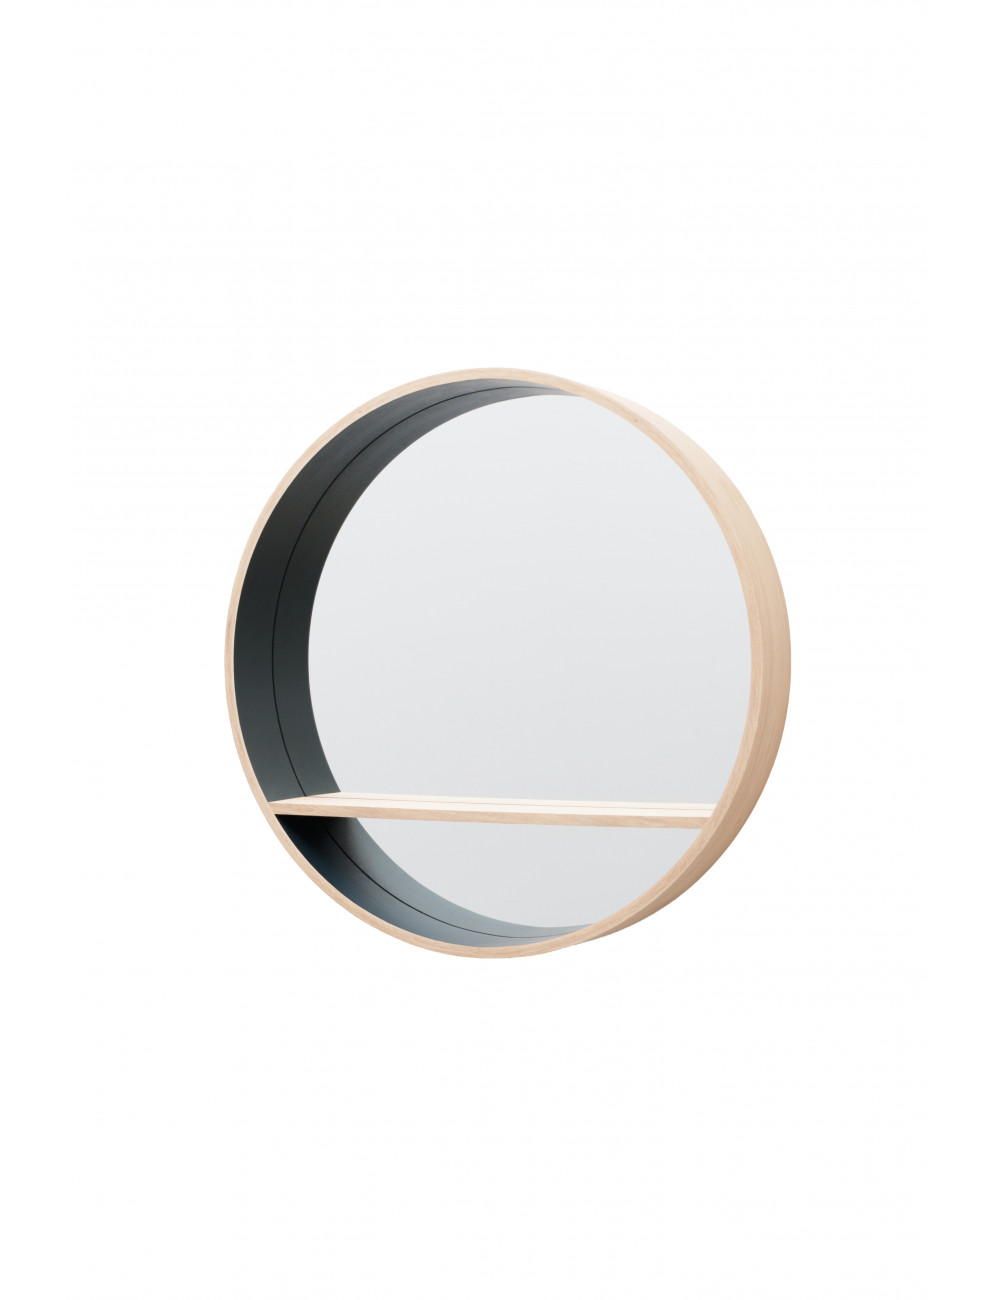 miroir rond chene massif Drugeot